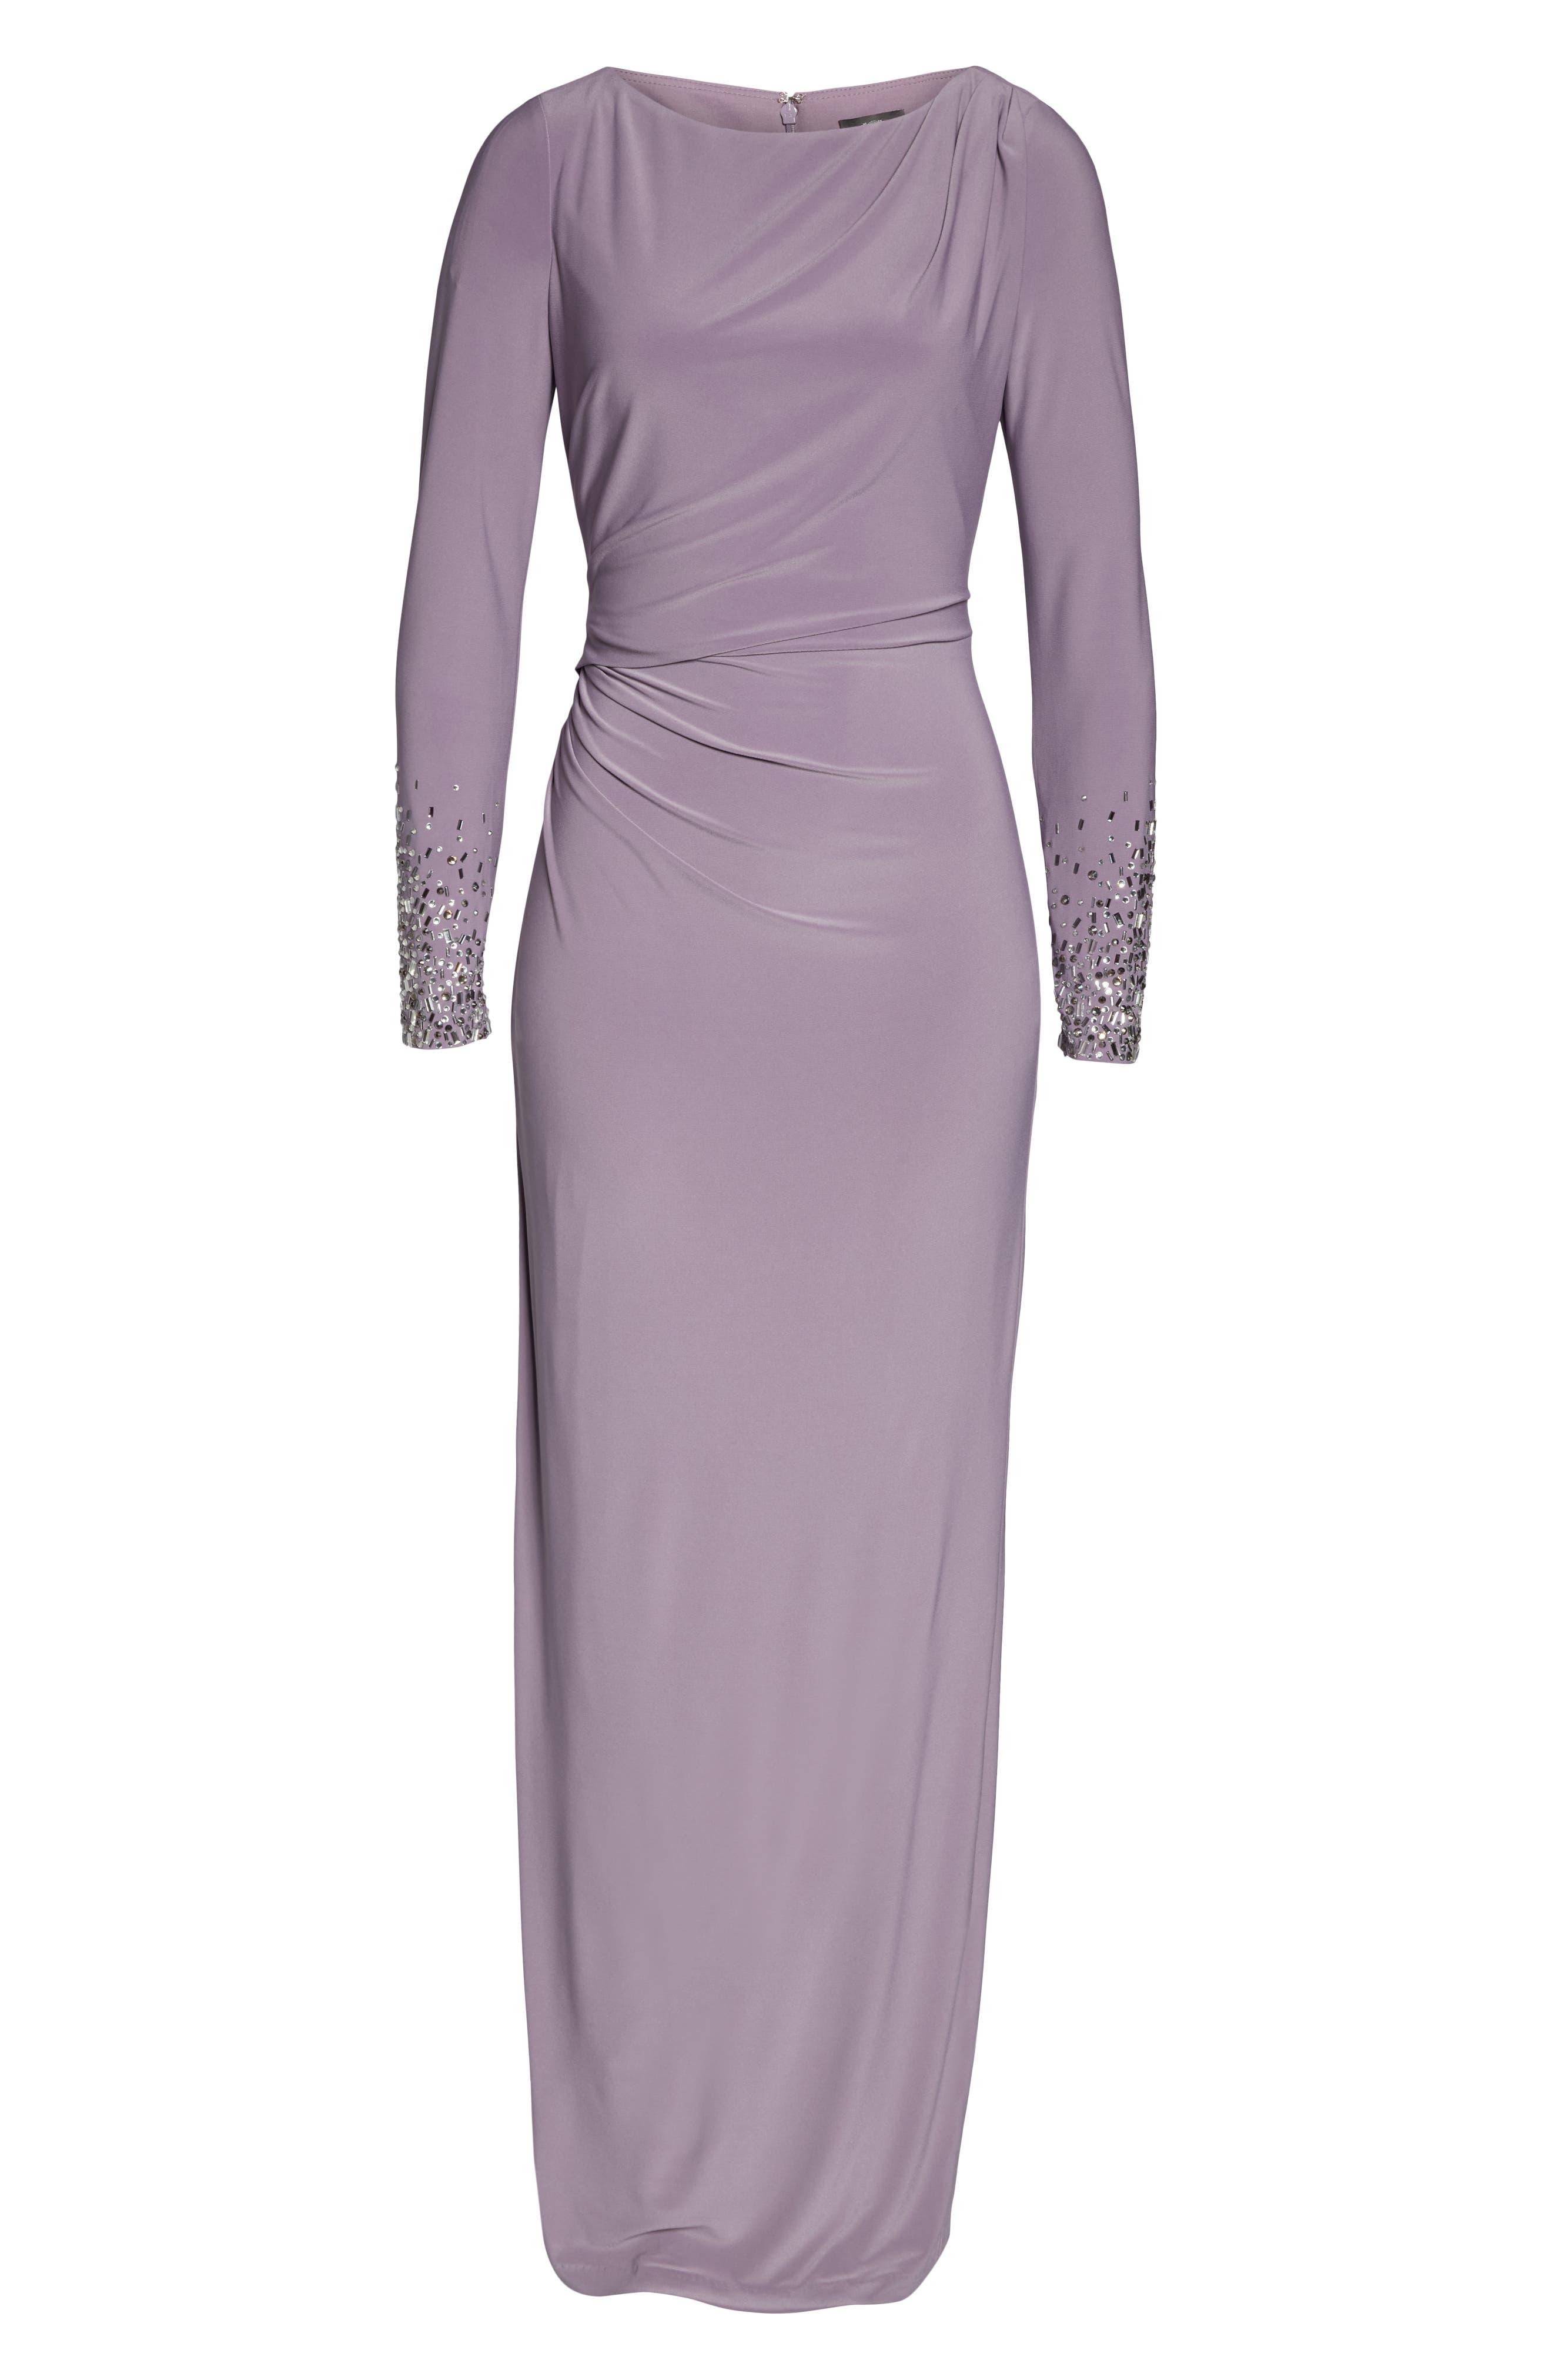 VINCE CAMUTO,                             Embellished Sleeve Ruched Evening Dress,                             Alternate thumbnail 7, color,                             LILAC